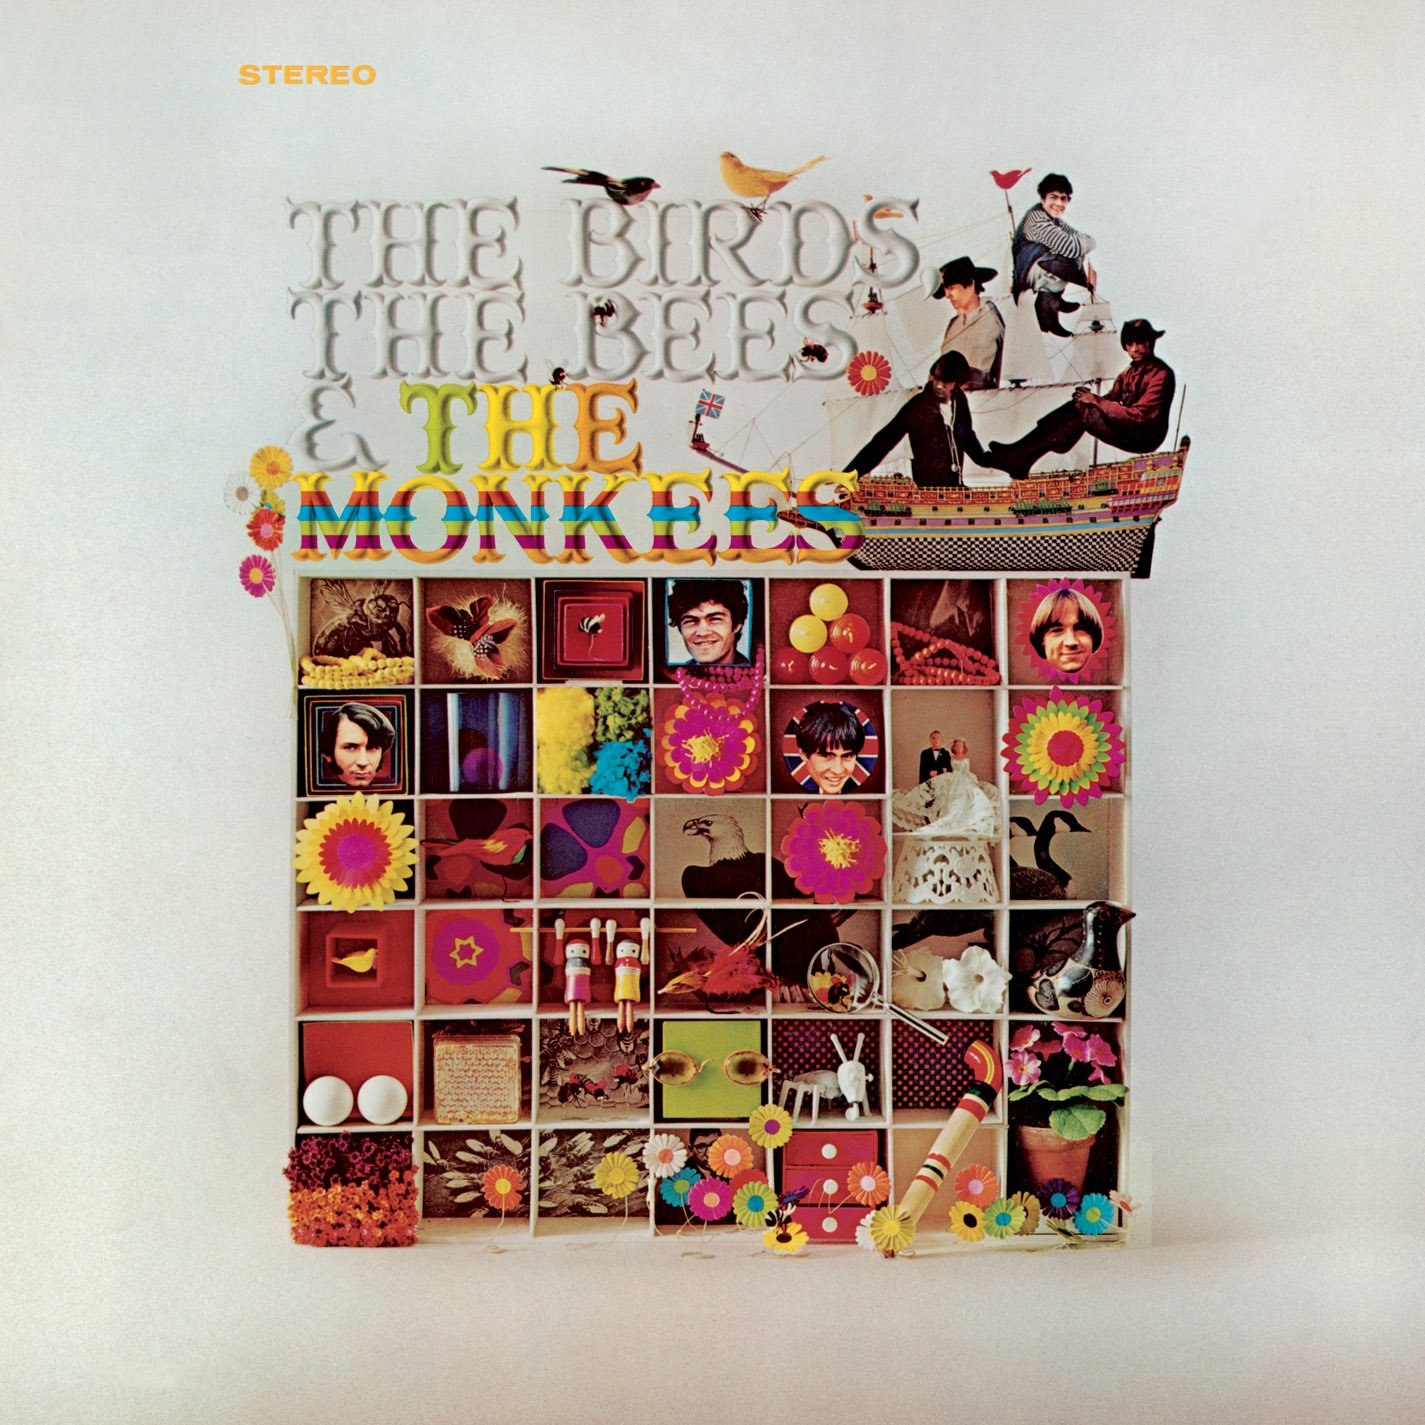 Image for The Birds, The Bees & The Monkees